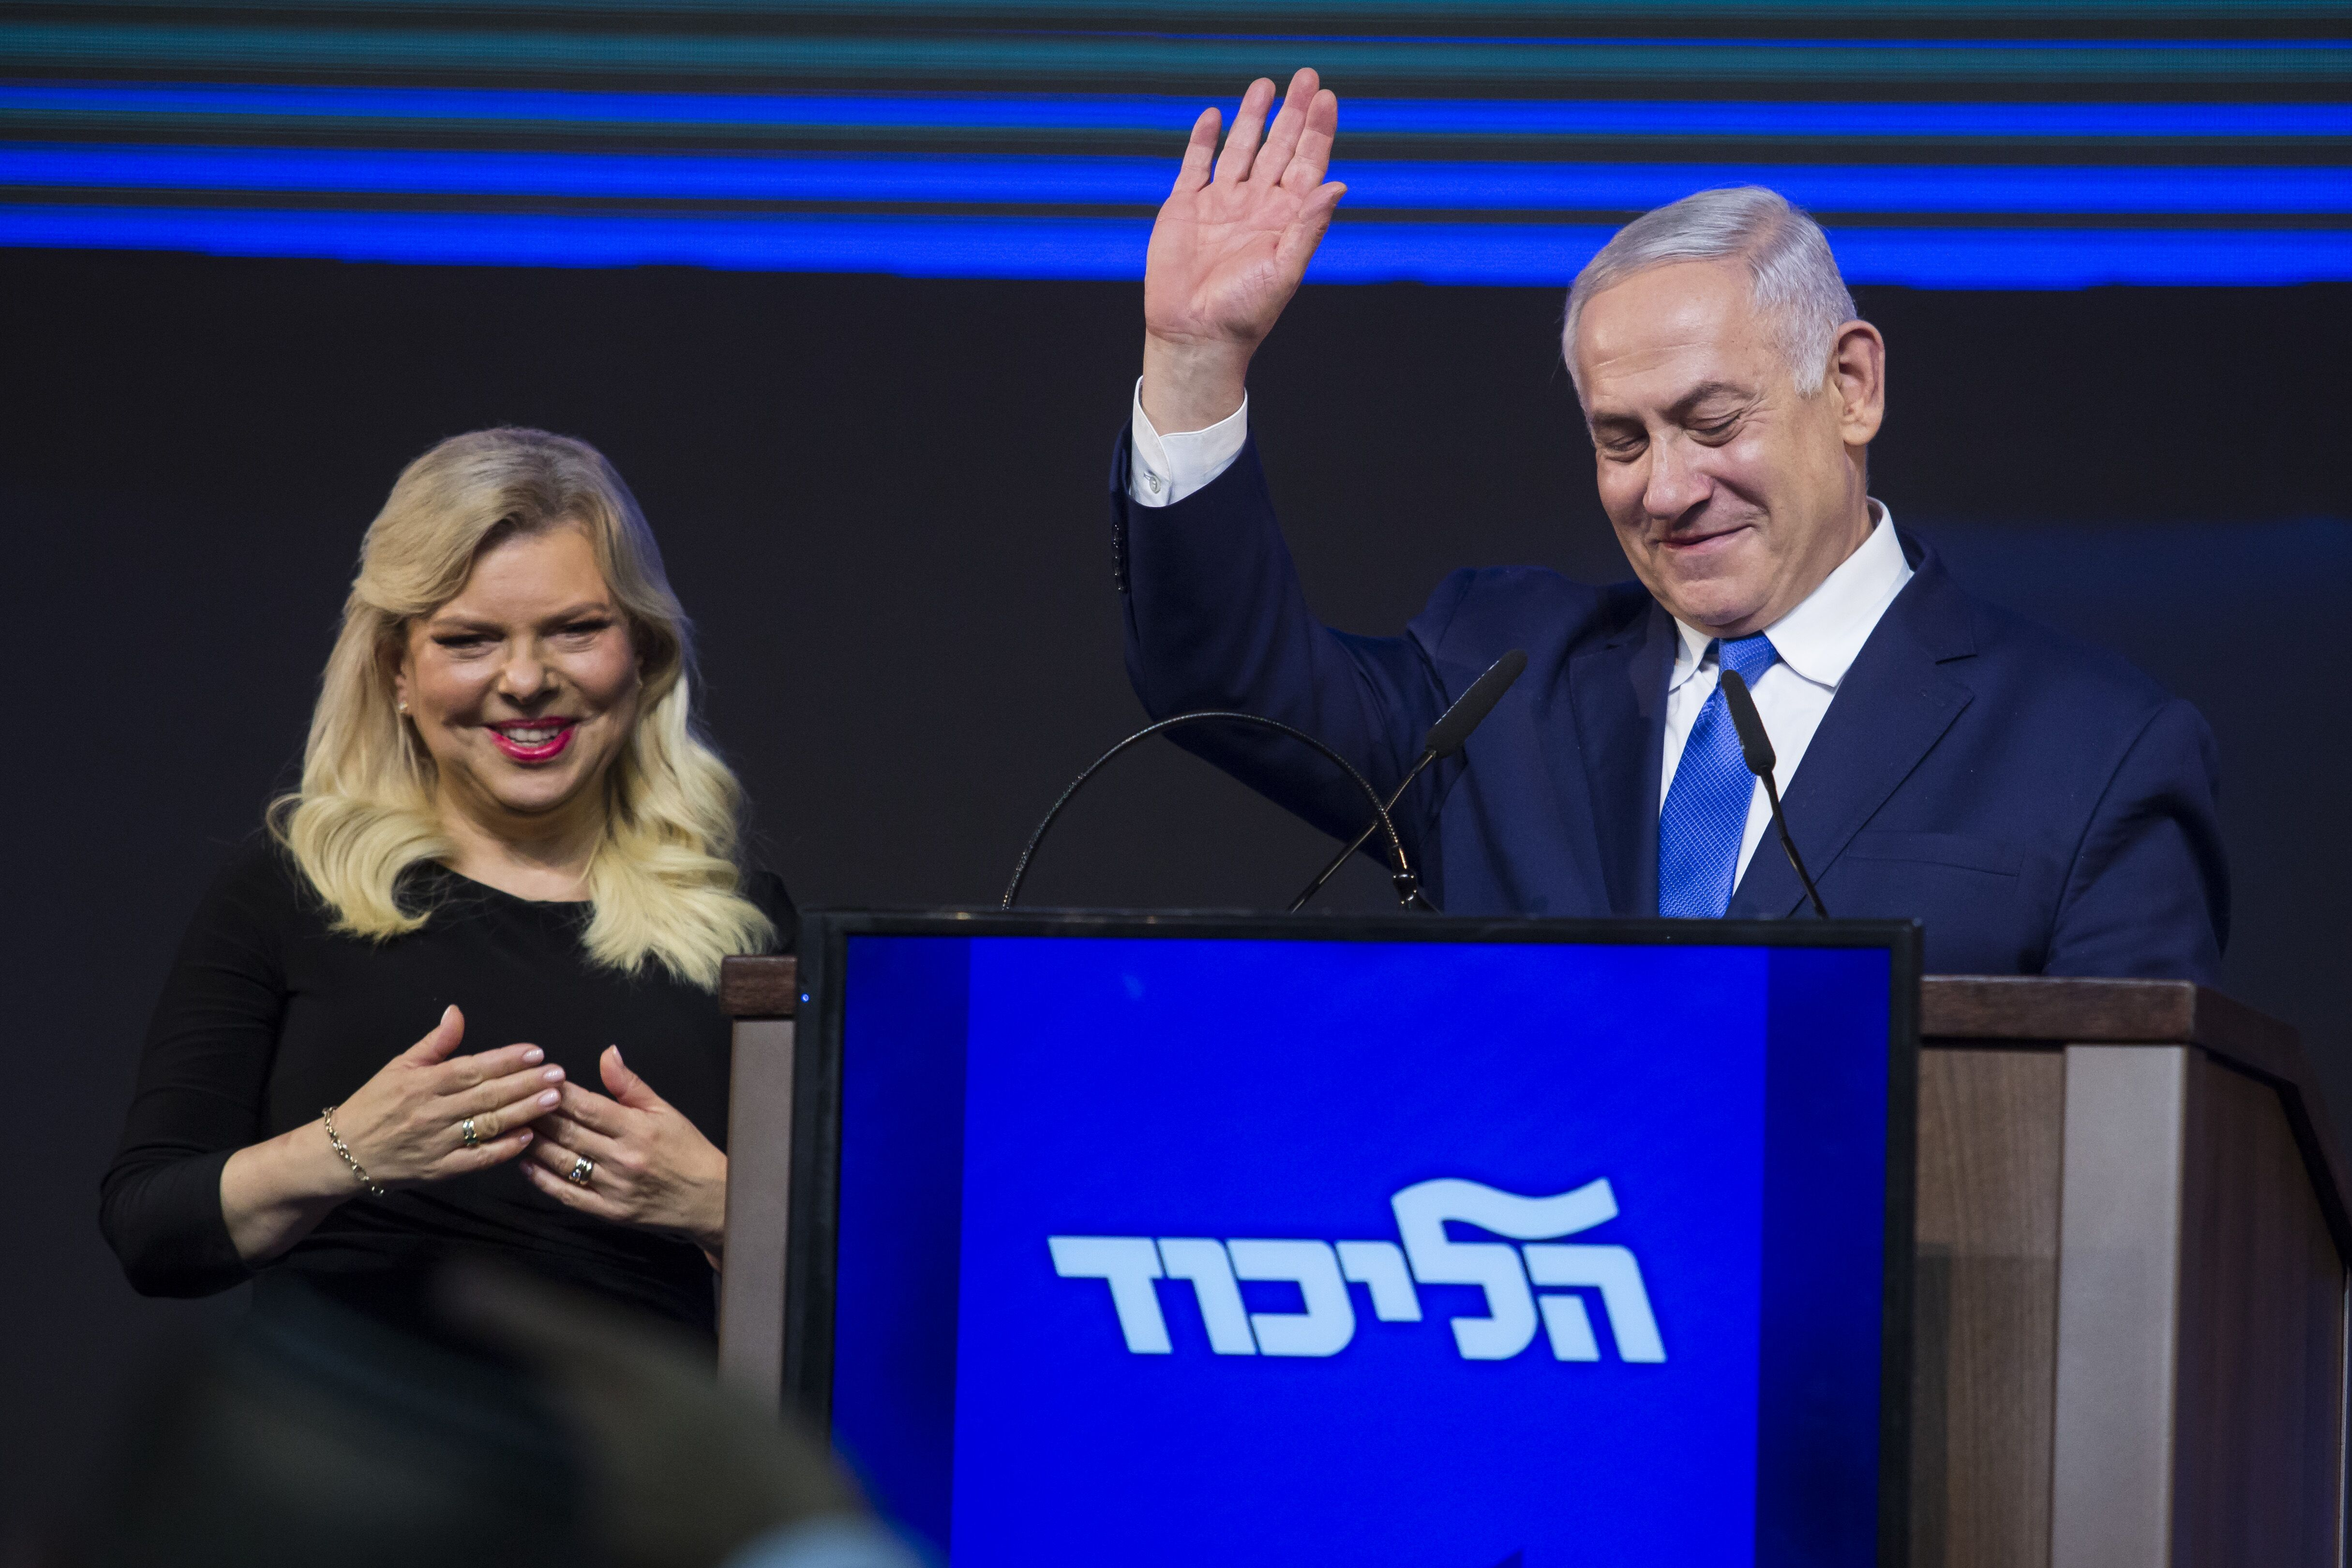 Israeli Prime Minister Benjamin Netanyahu and his wife, Sara, greet supporters during his victory speech in Tel Aviv, April 10, 2019. (Photo/JTA-Amir Levy-Getty Images)